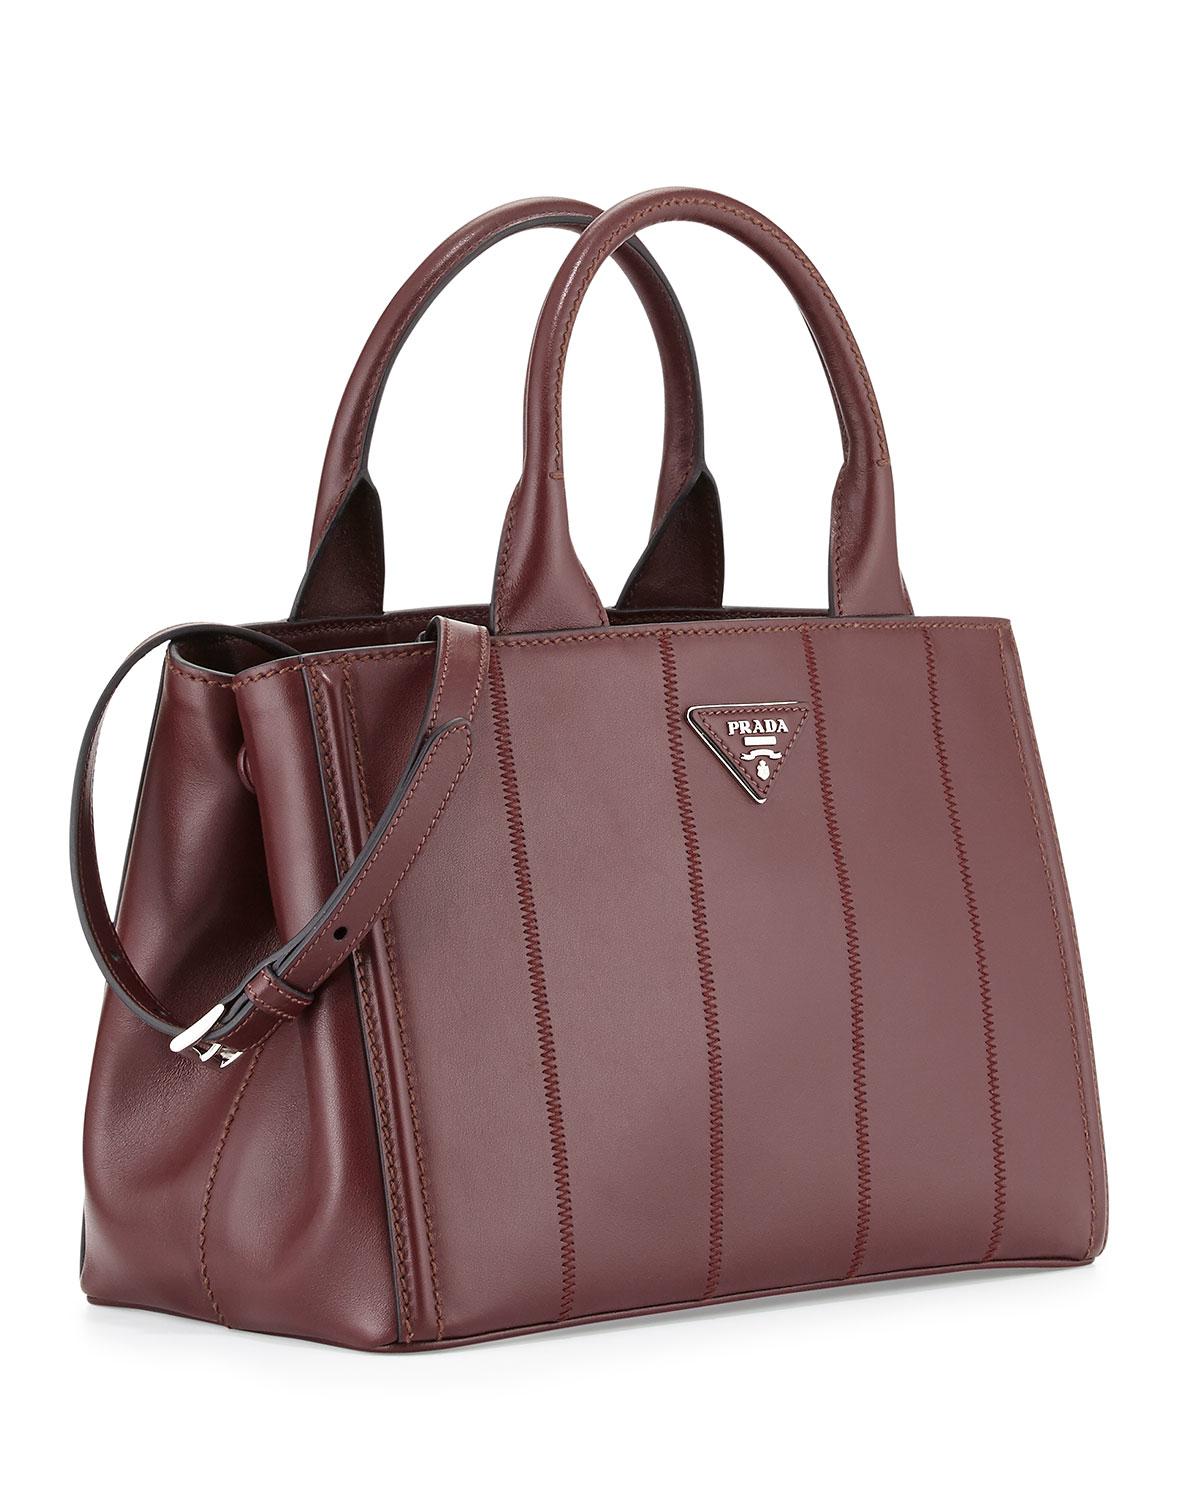 how much does a prada bag cost - Prada Soft Leather Medium Garden Tote Bag in Red (BURGUNDY) | Lyst